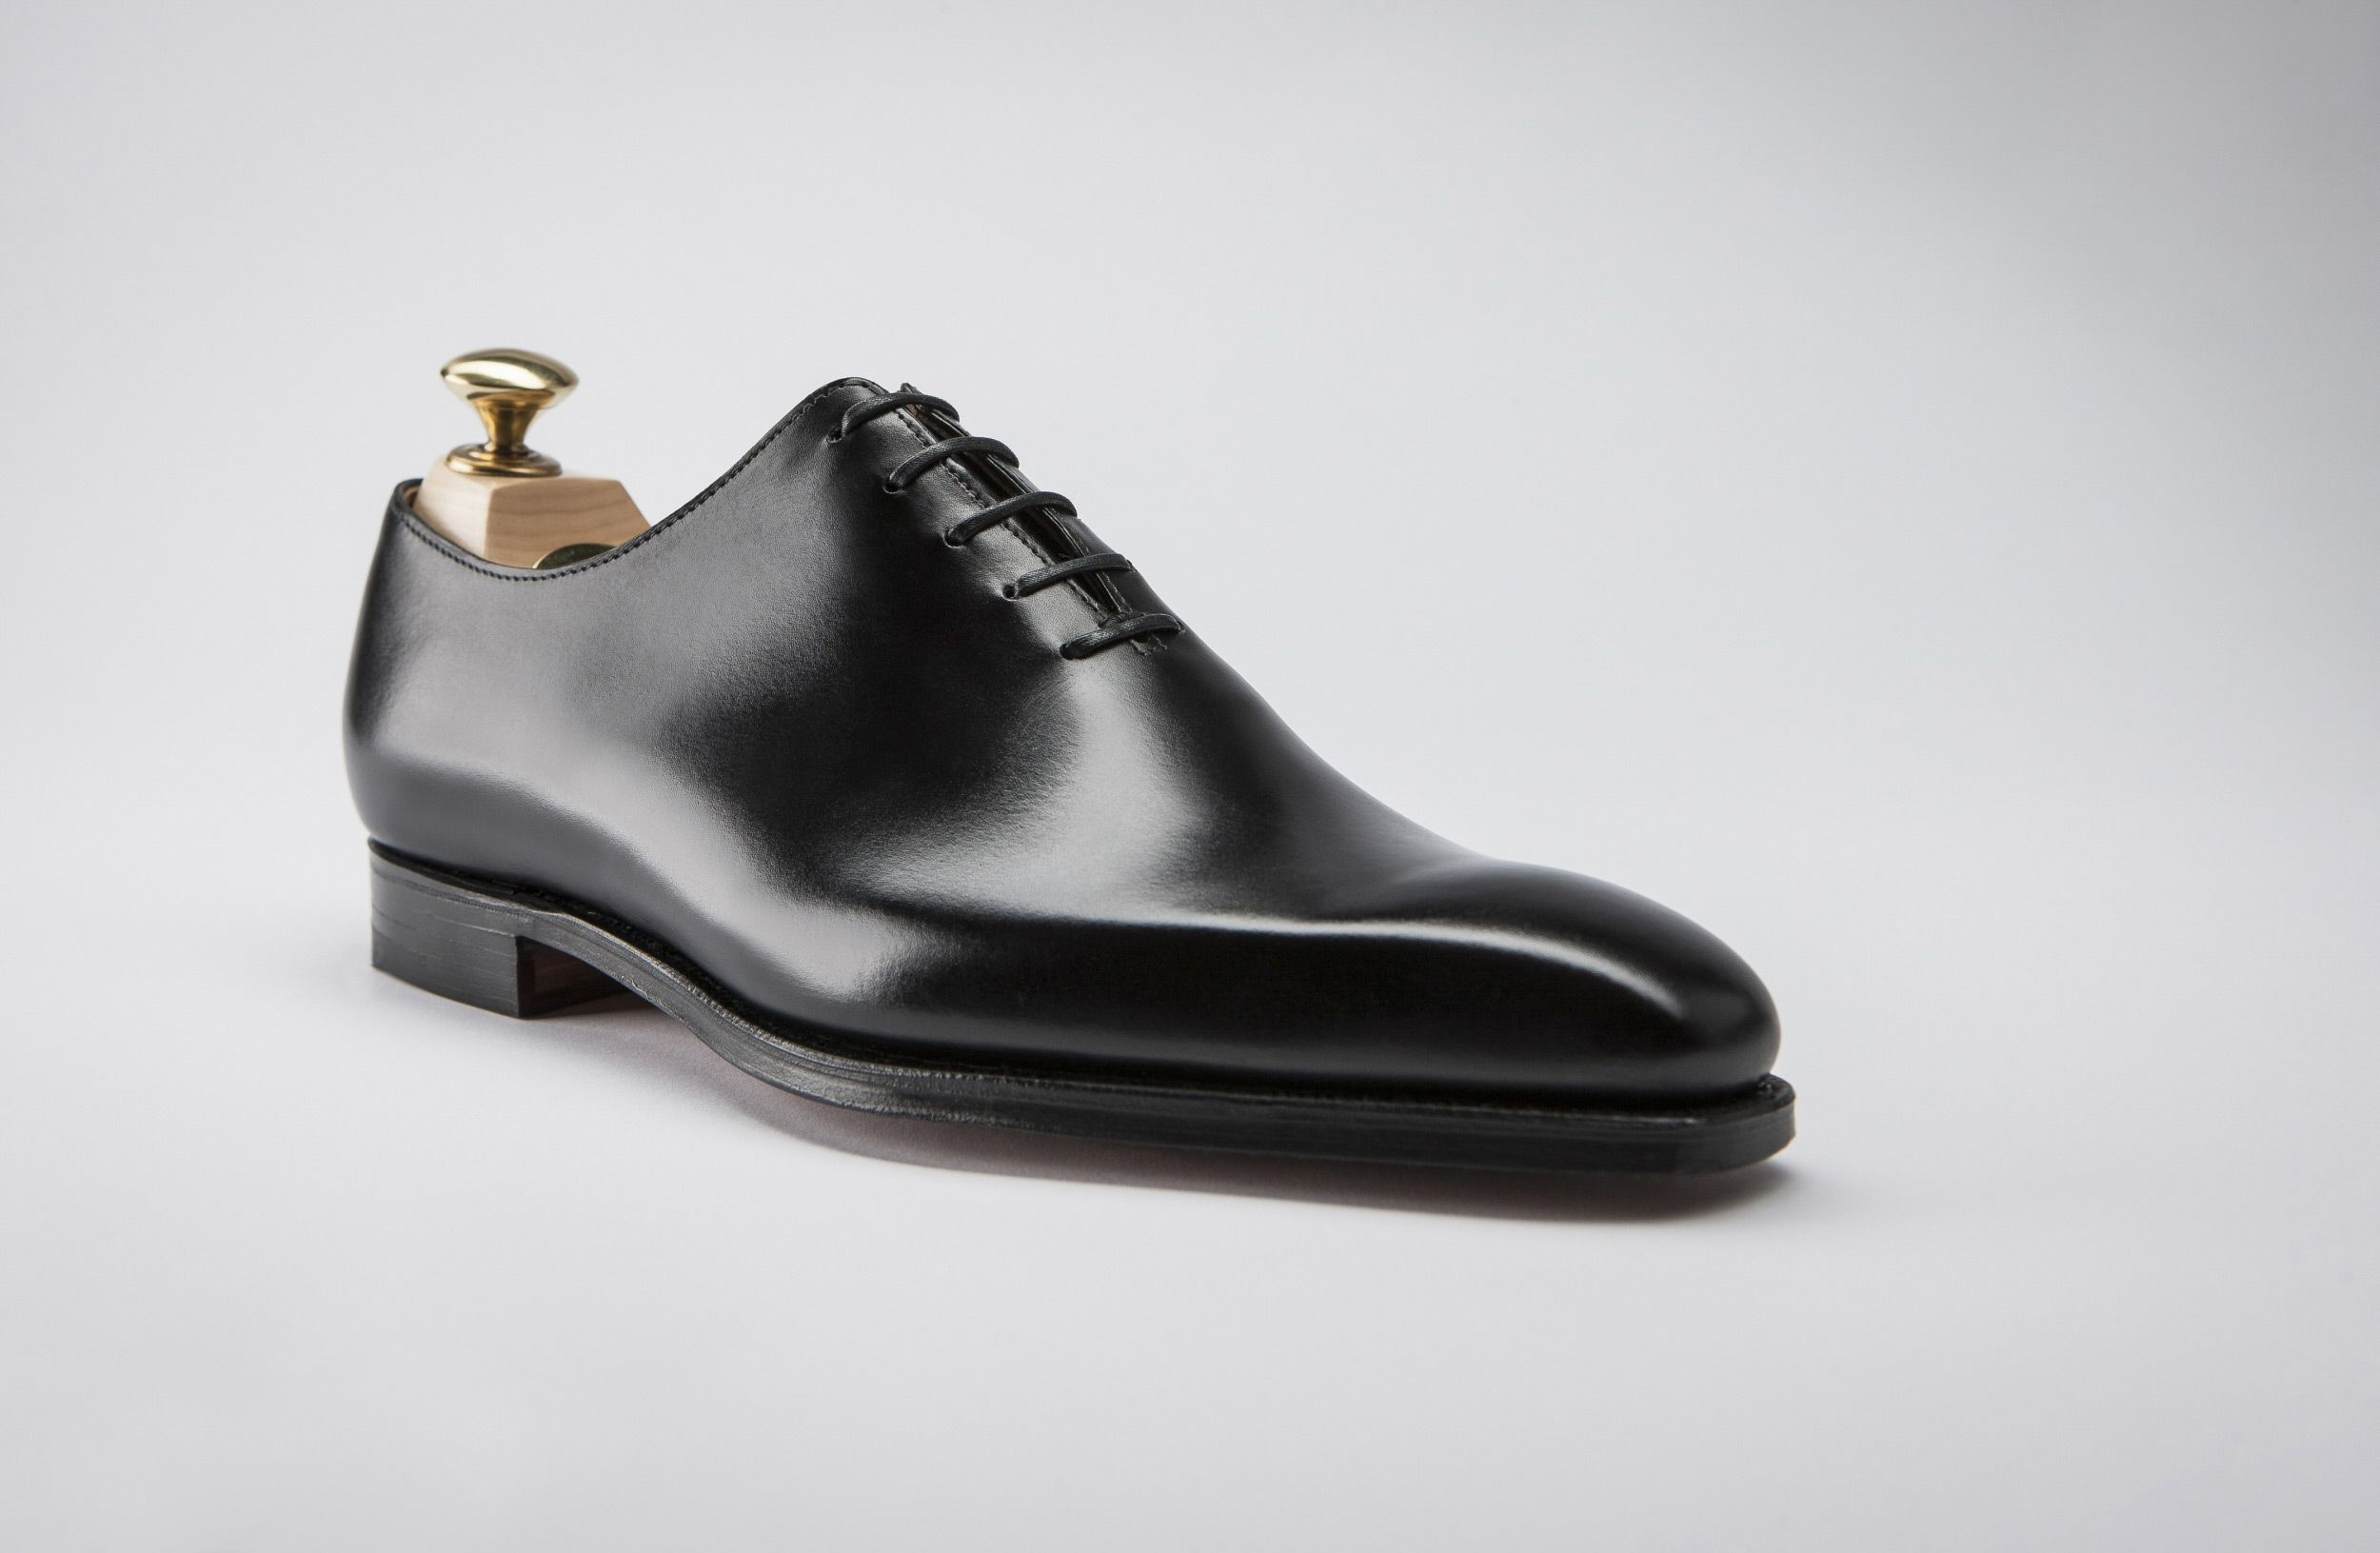 ad65a48ff1c Image result for crockett and jones Wholecut leather Oxford shoes ...